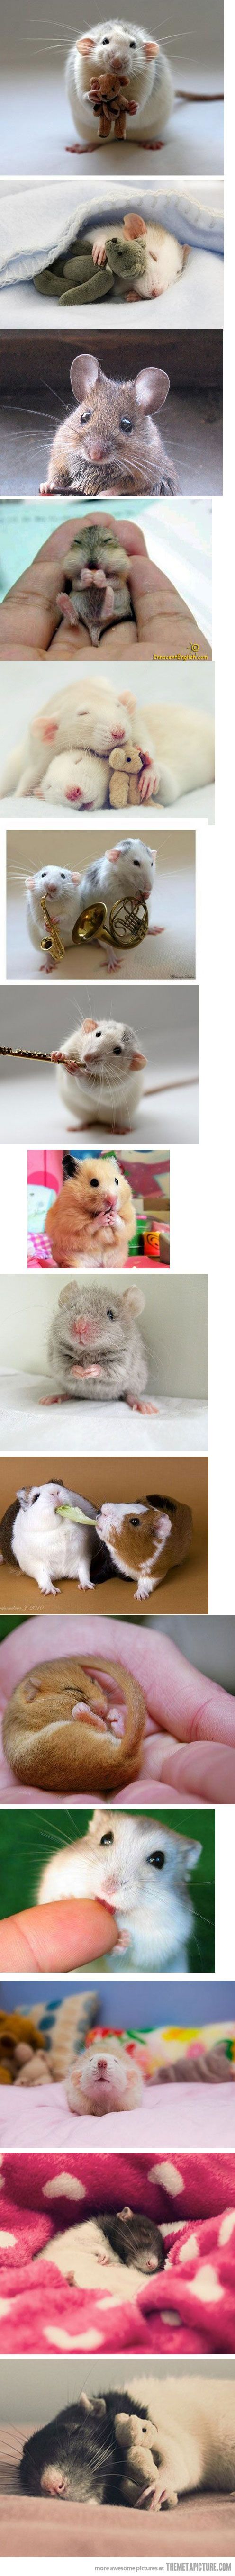 okay, sometimes even rodents can be cute...